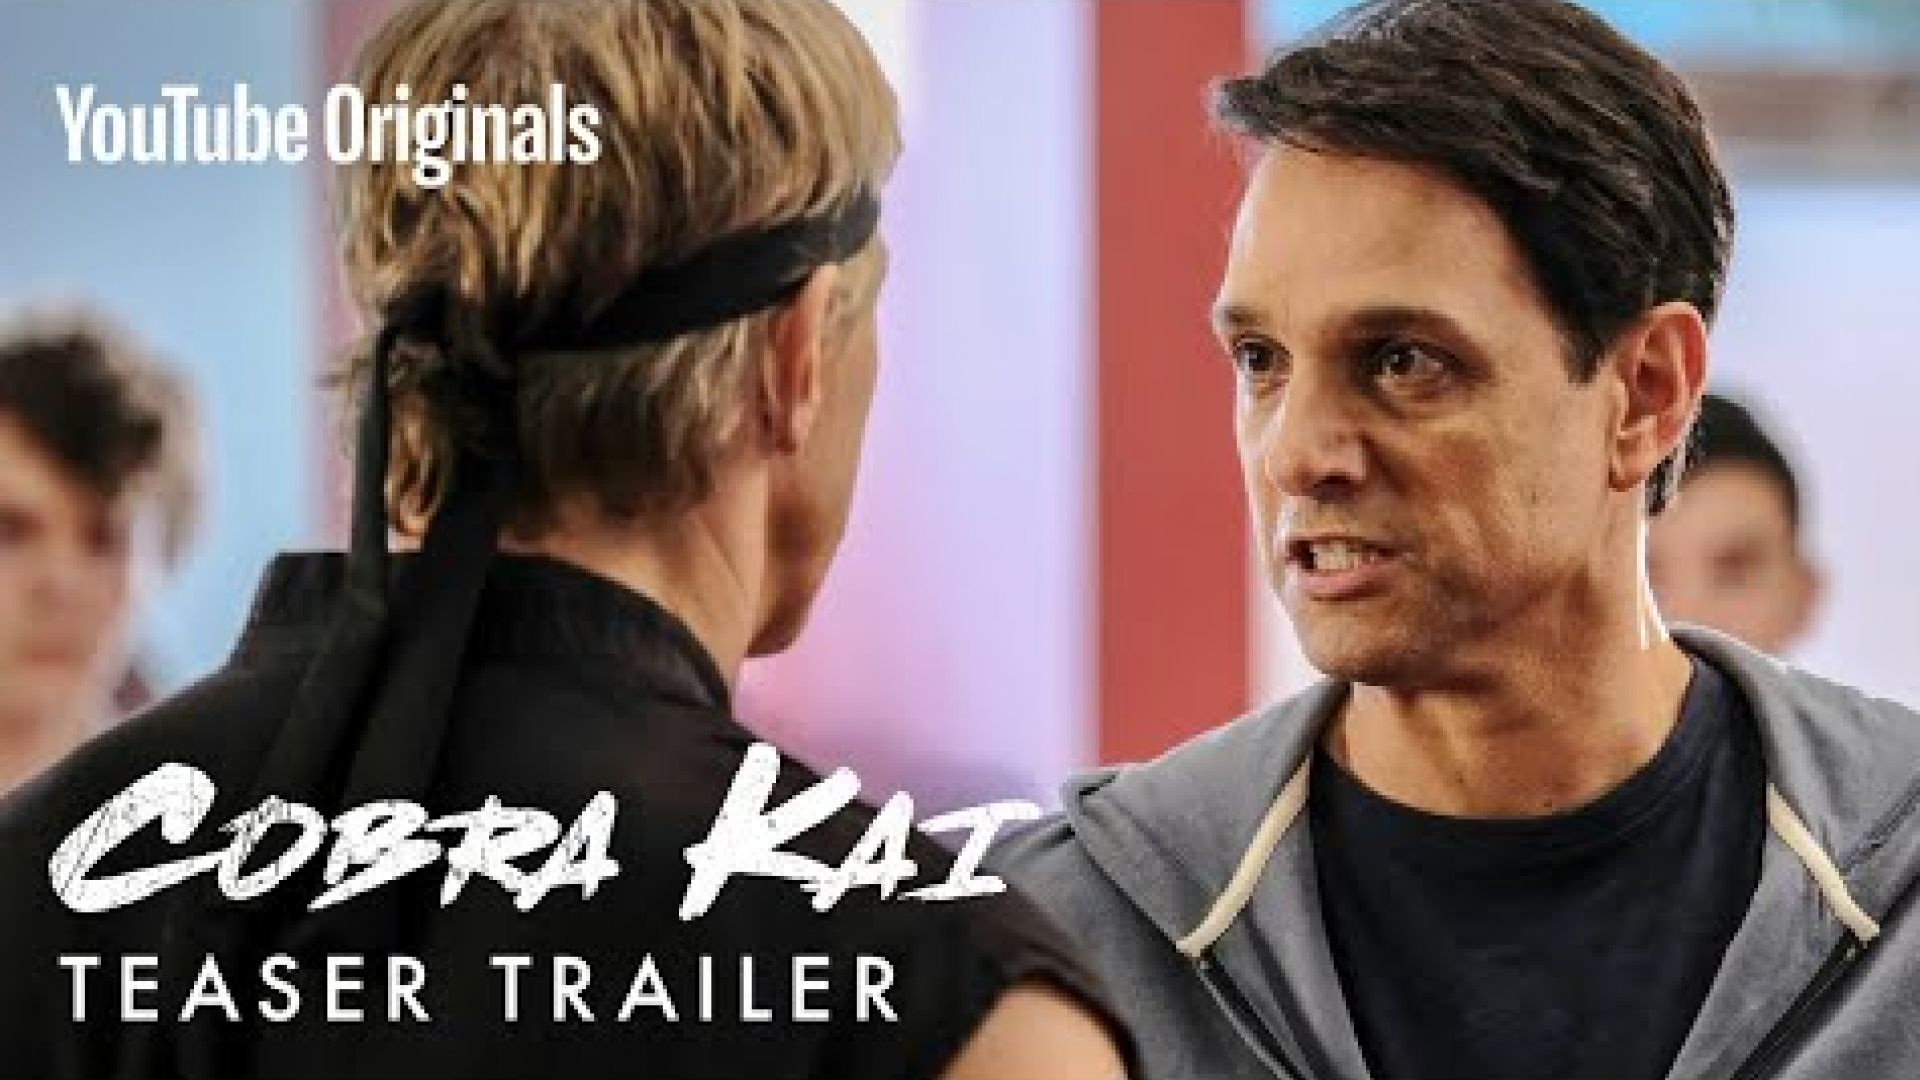 First Look 'Cobra Kai' Season Teaser